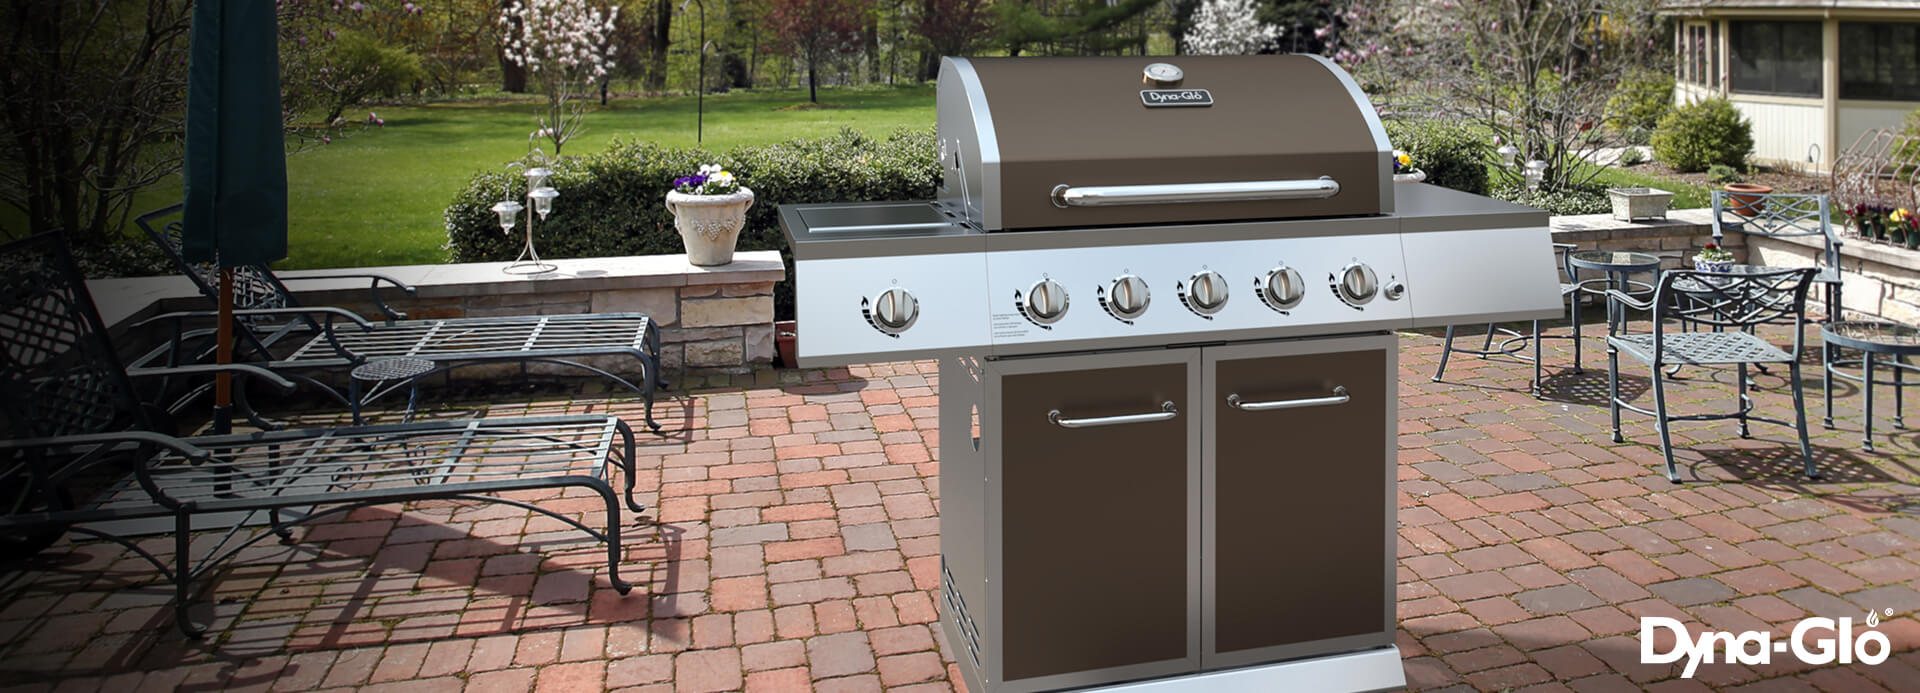 Outdoor Bbq Kitchen Grill Grills Outdoor Cooking Patio Lawn Garden Amazoncom